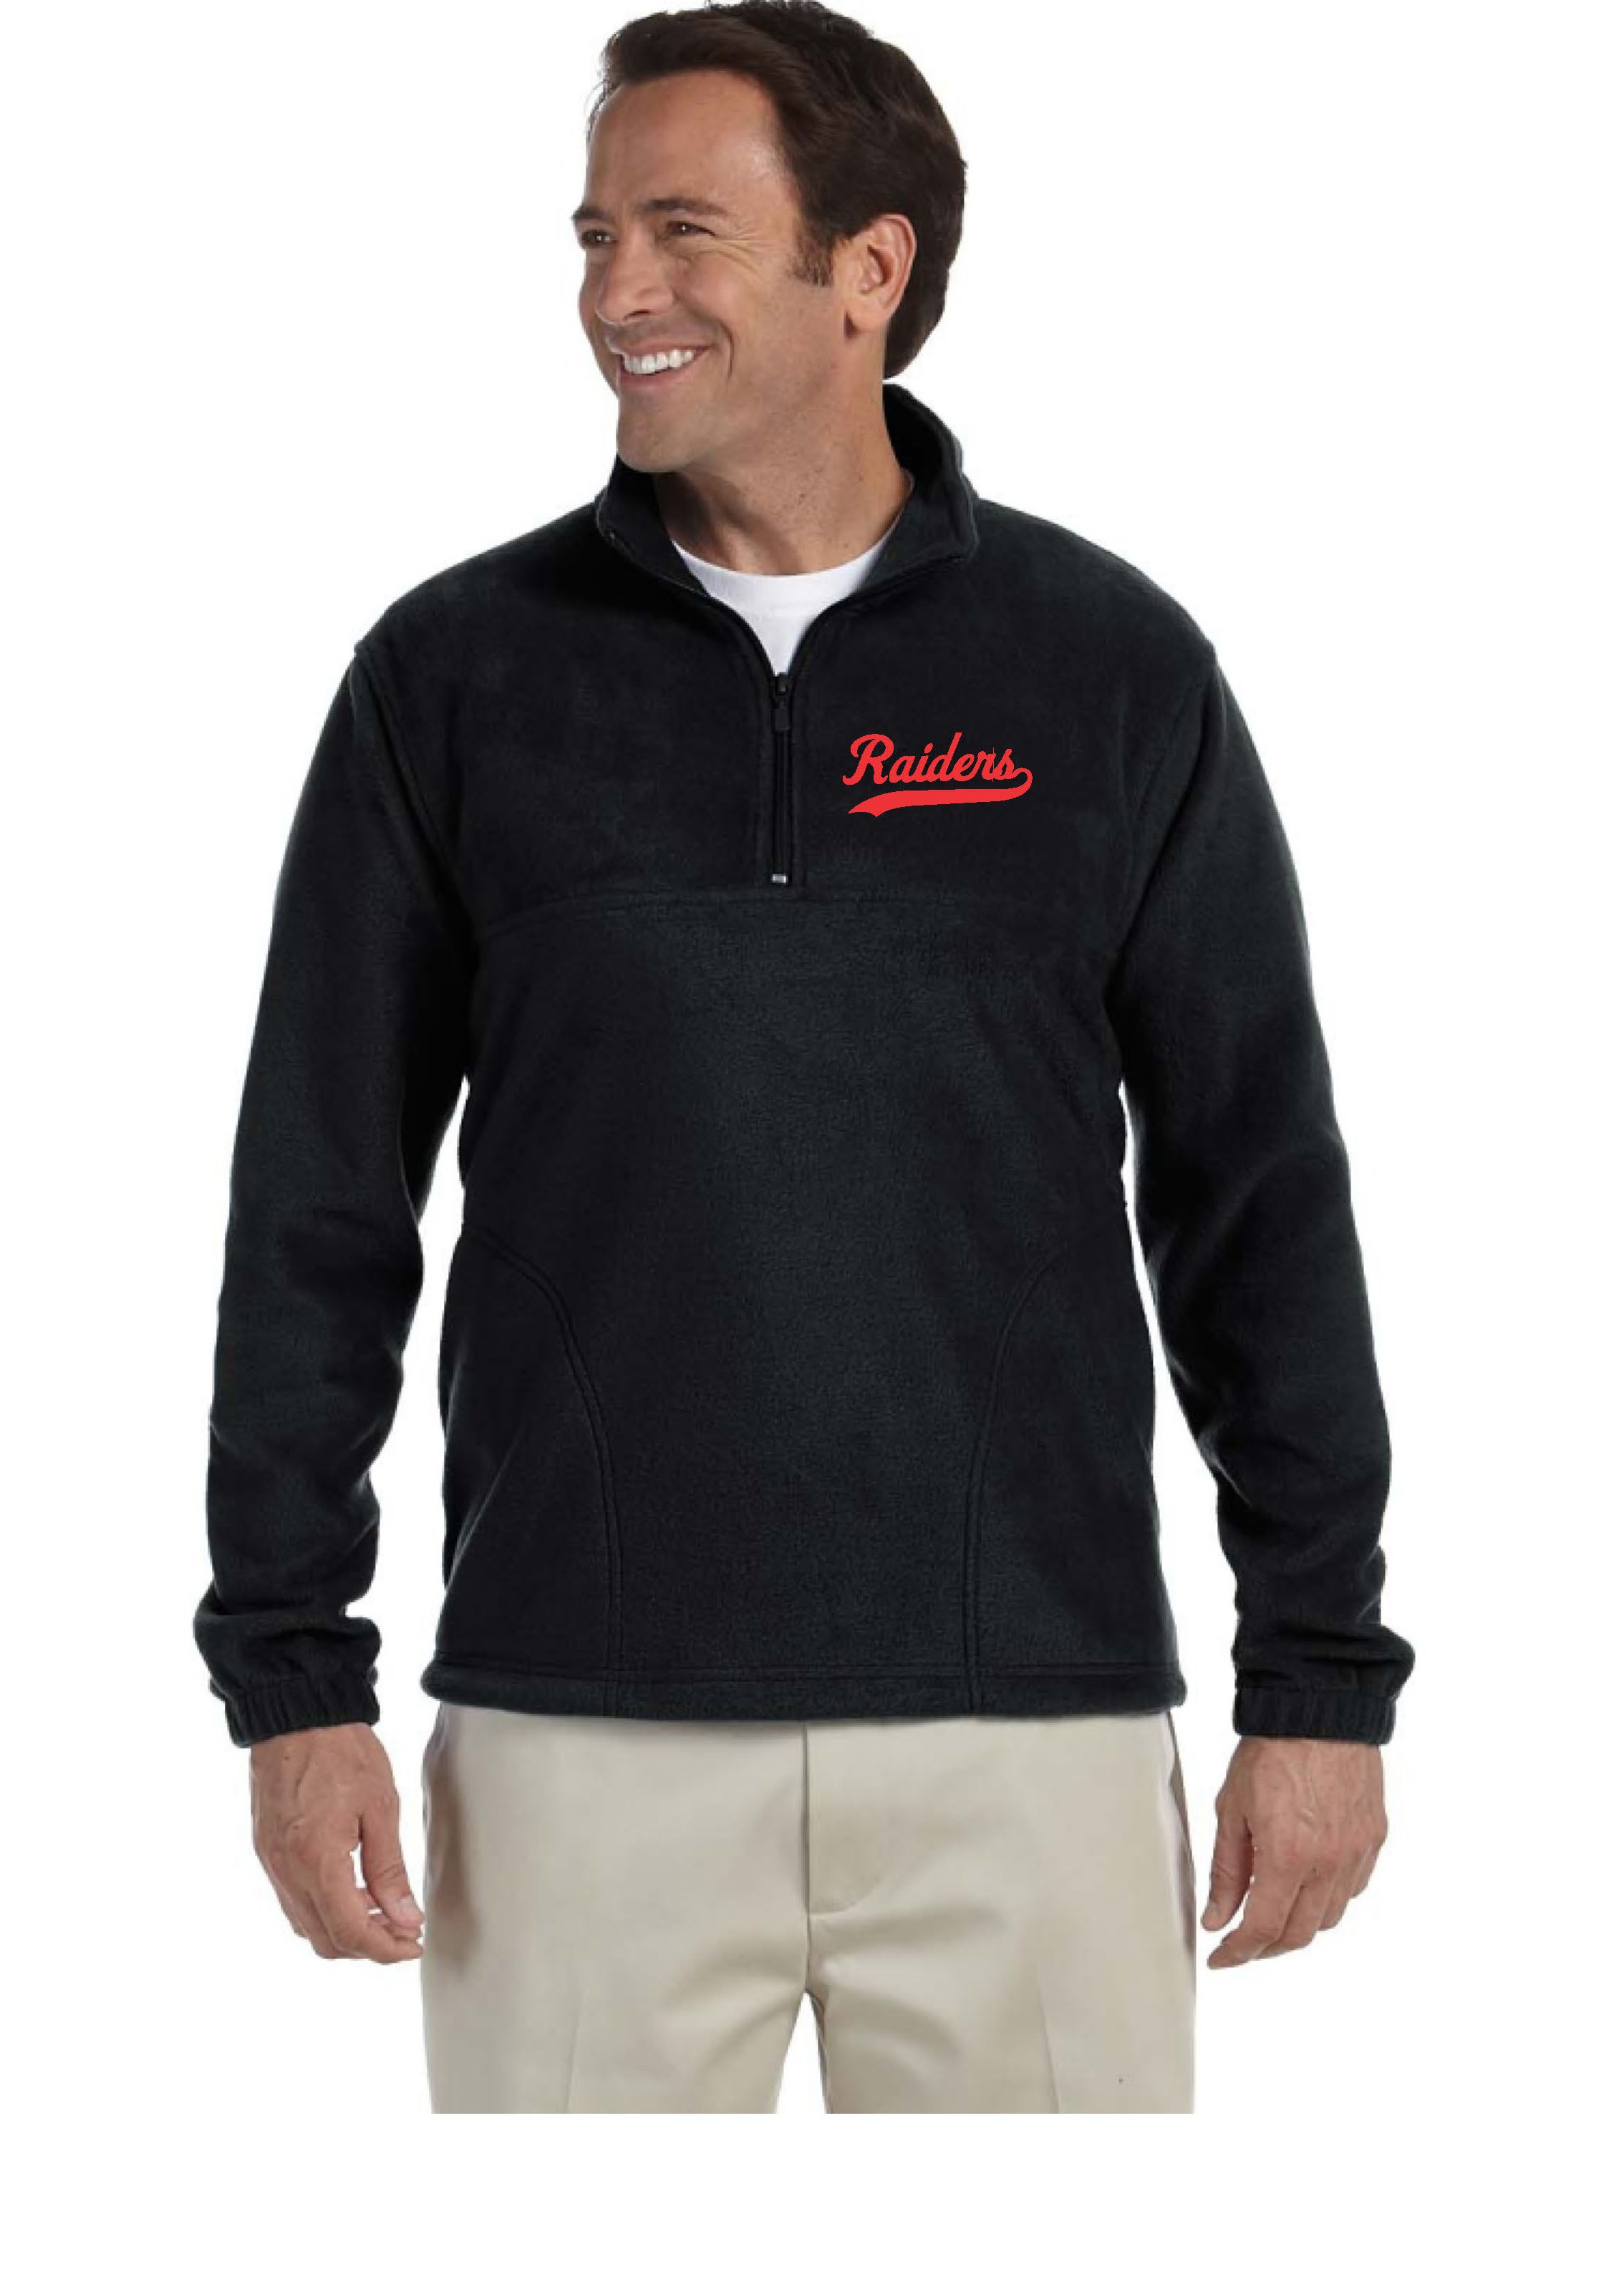 Raiders All Sport Quarter Zip Lightweight Pullover